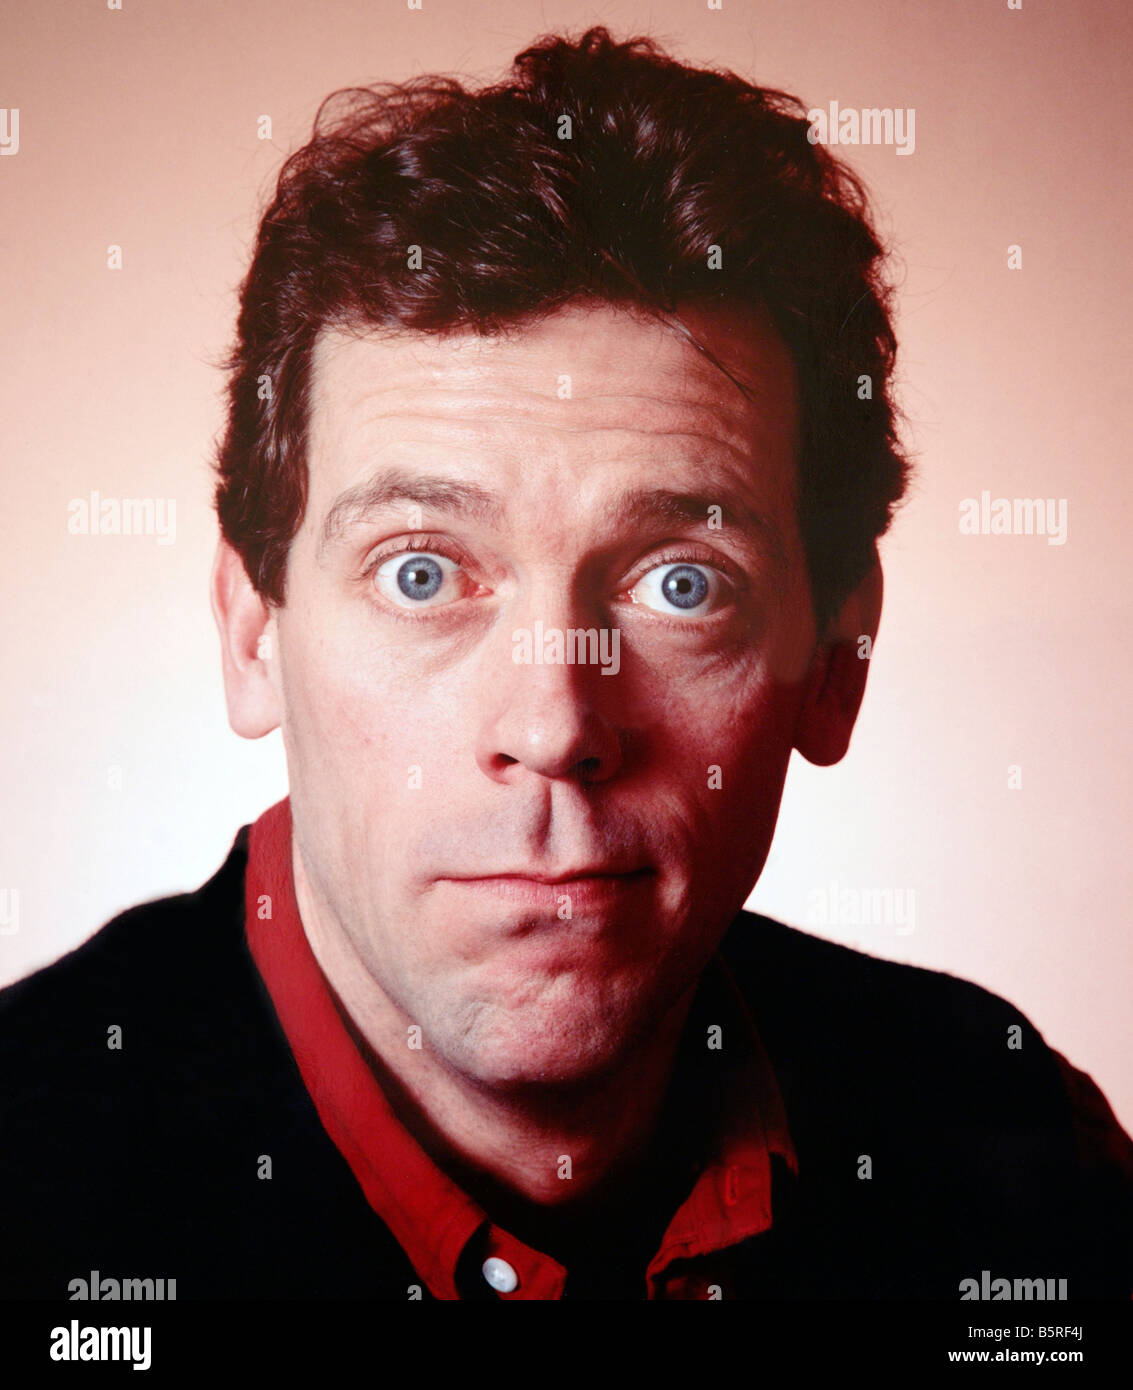 Actor comedian Hugh Laurie currently in US TV series 'House' - Stock Image